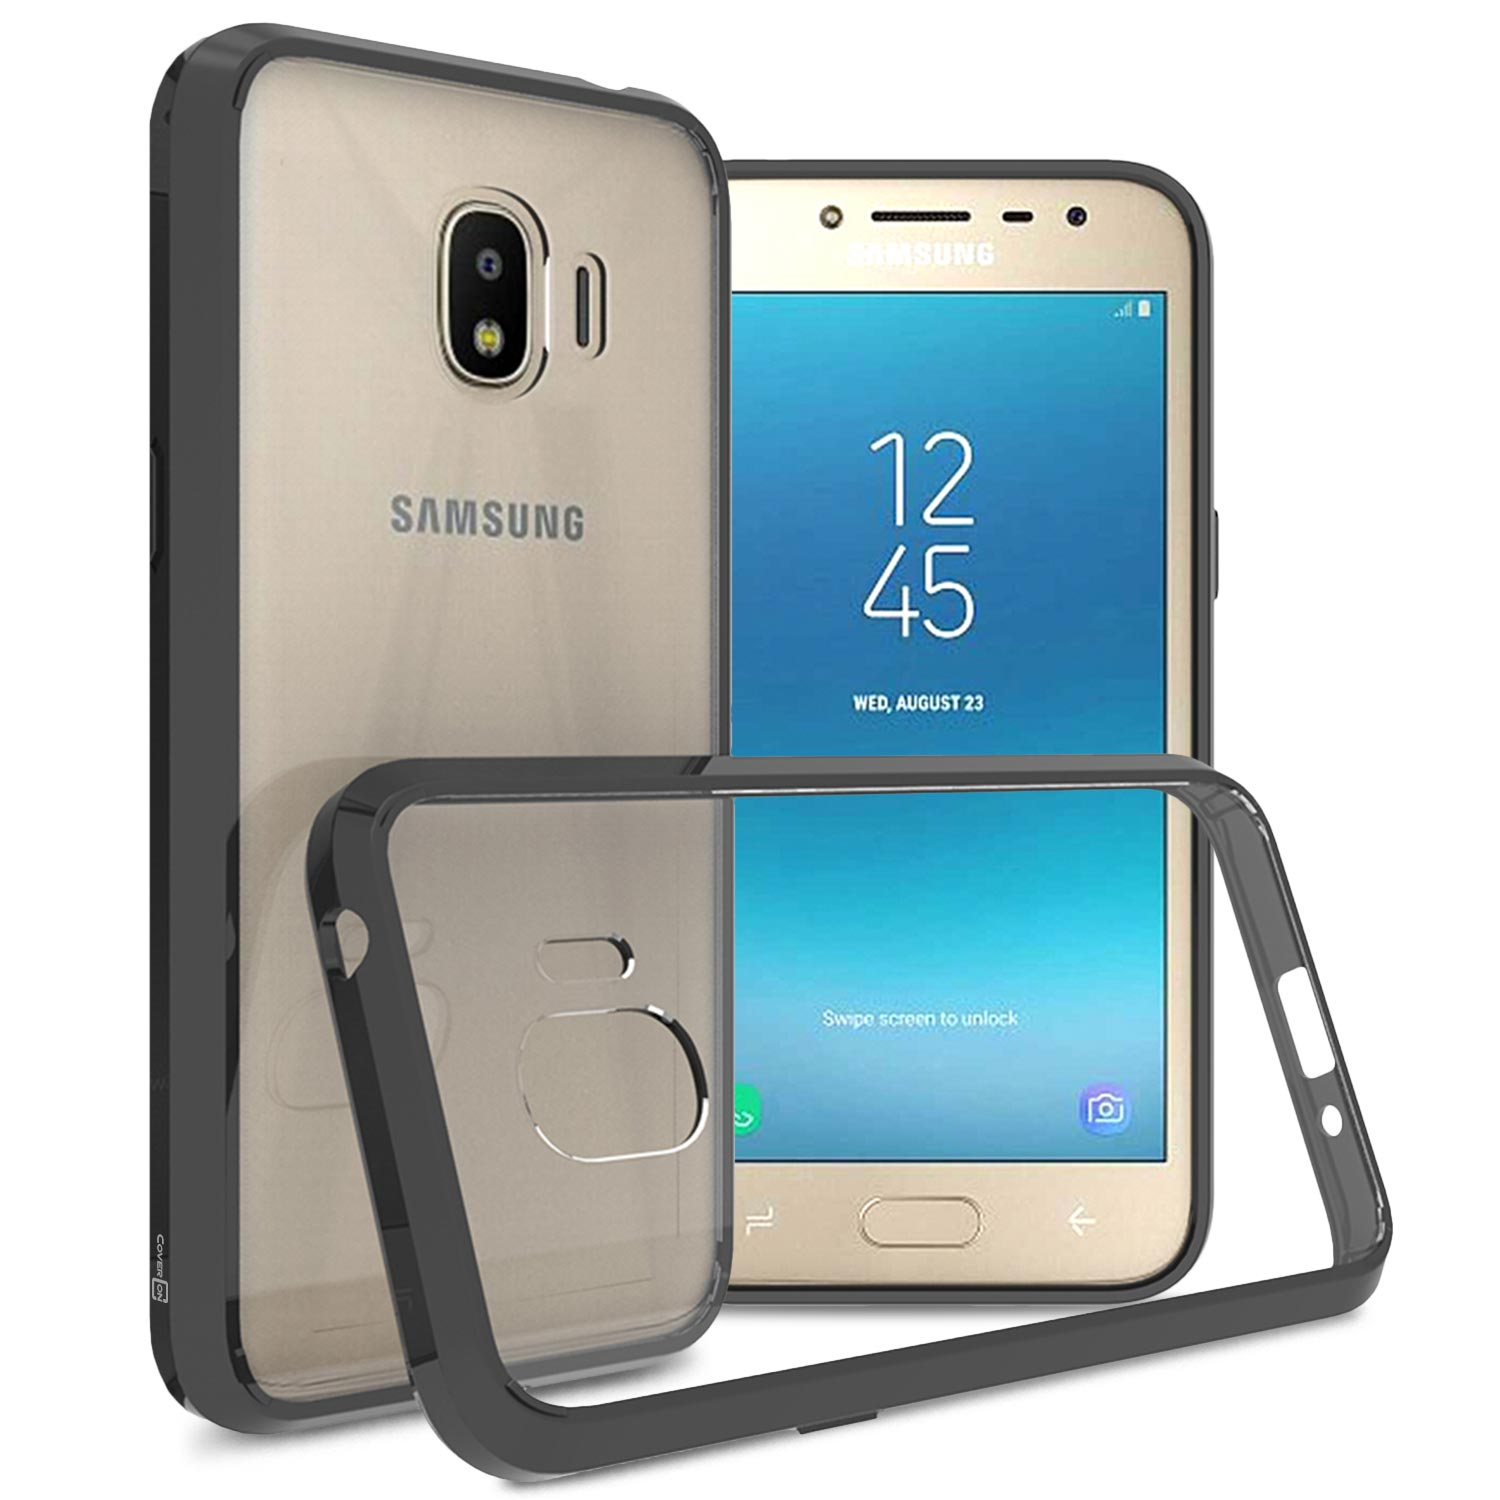 buy online 12356 ff7b1 CoverON Samsung Galaxy J2 Pro 2018 / Galaxy Grand Prime Pro 2018 Case,  ClearGuard Series Clear Hard Phone Cover